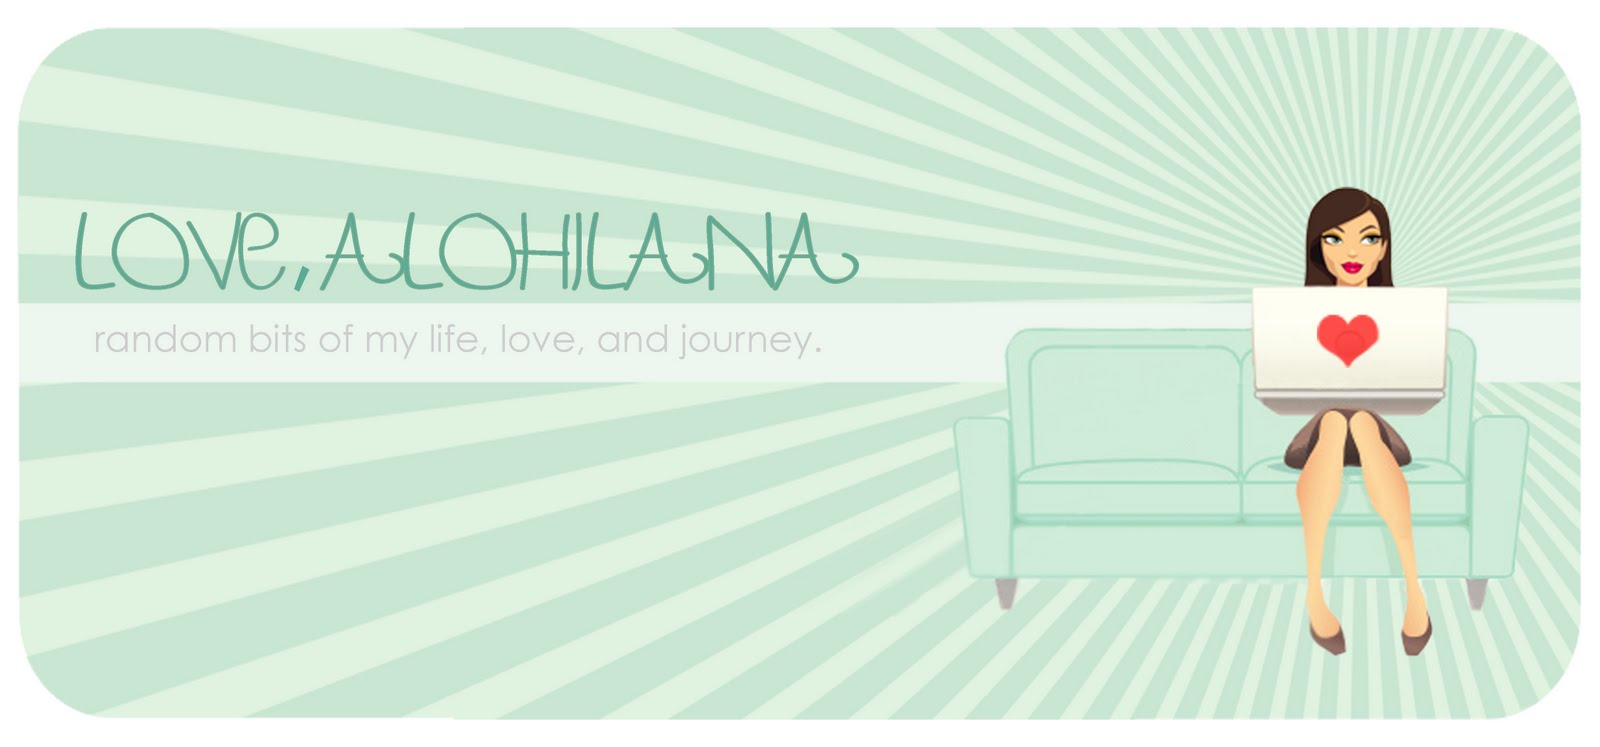 [the alohilana blog]